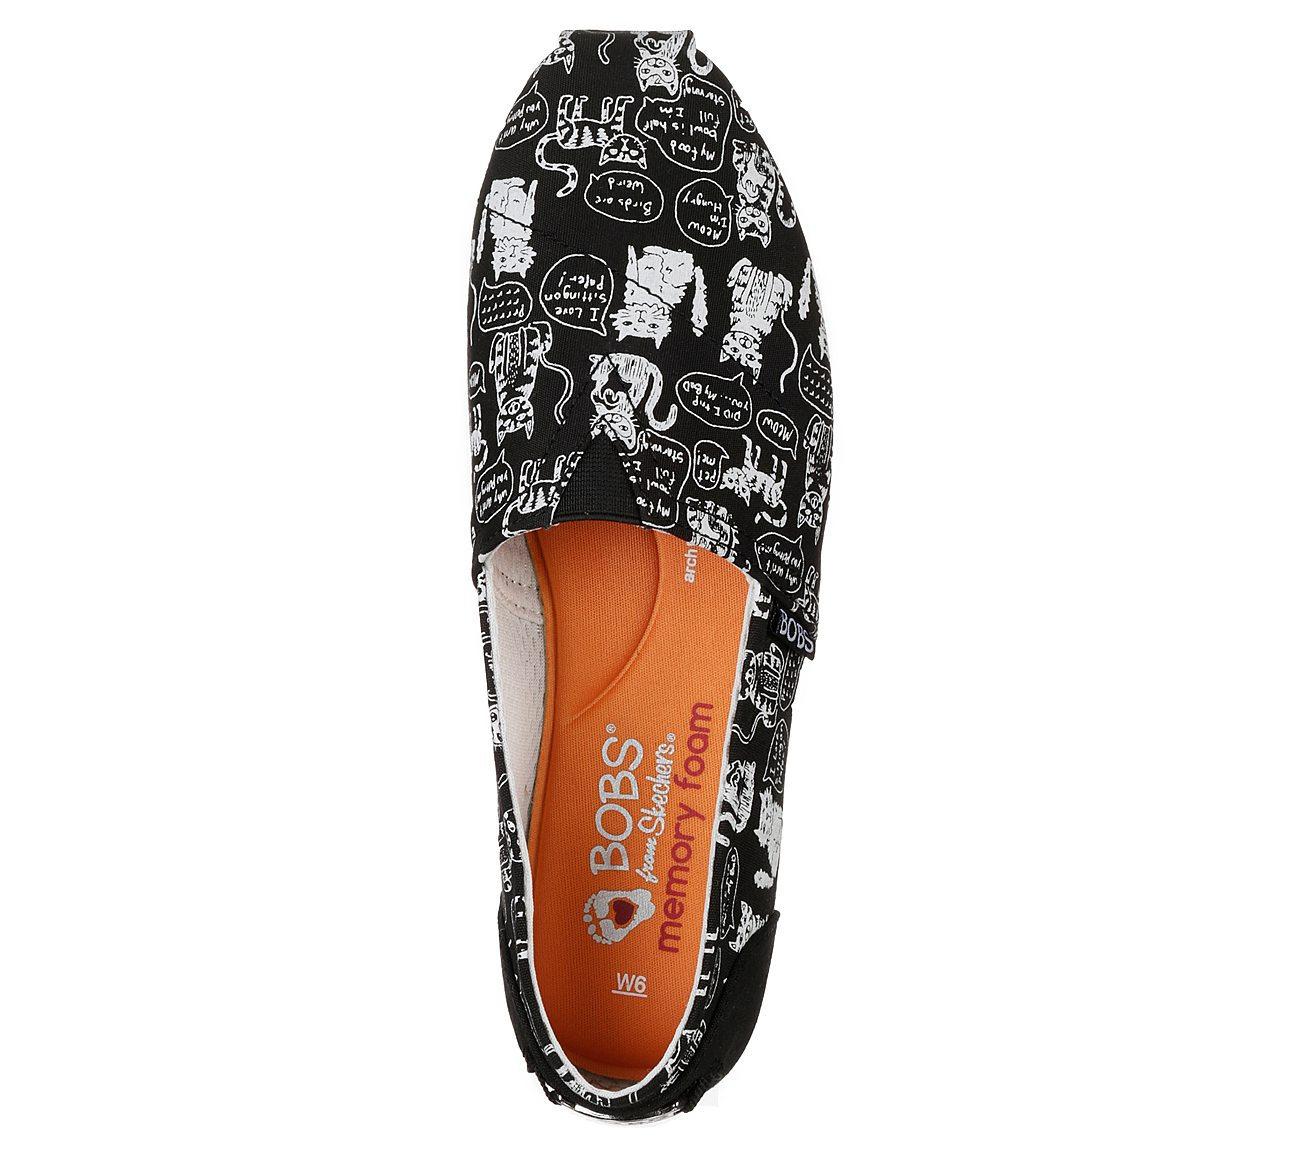 d68845cda52 Buy SKECHERS BOBS Plush - Quote Me BOBS Shoes only $45.00